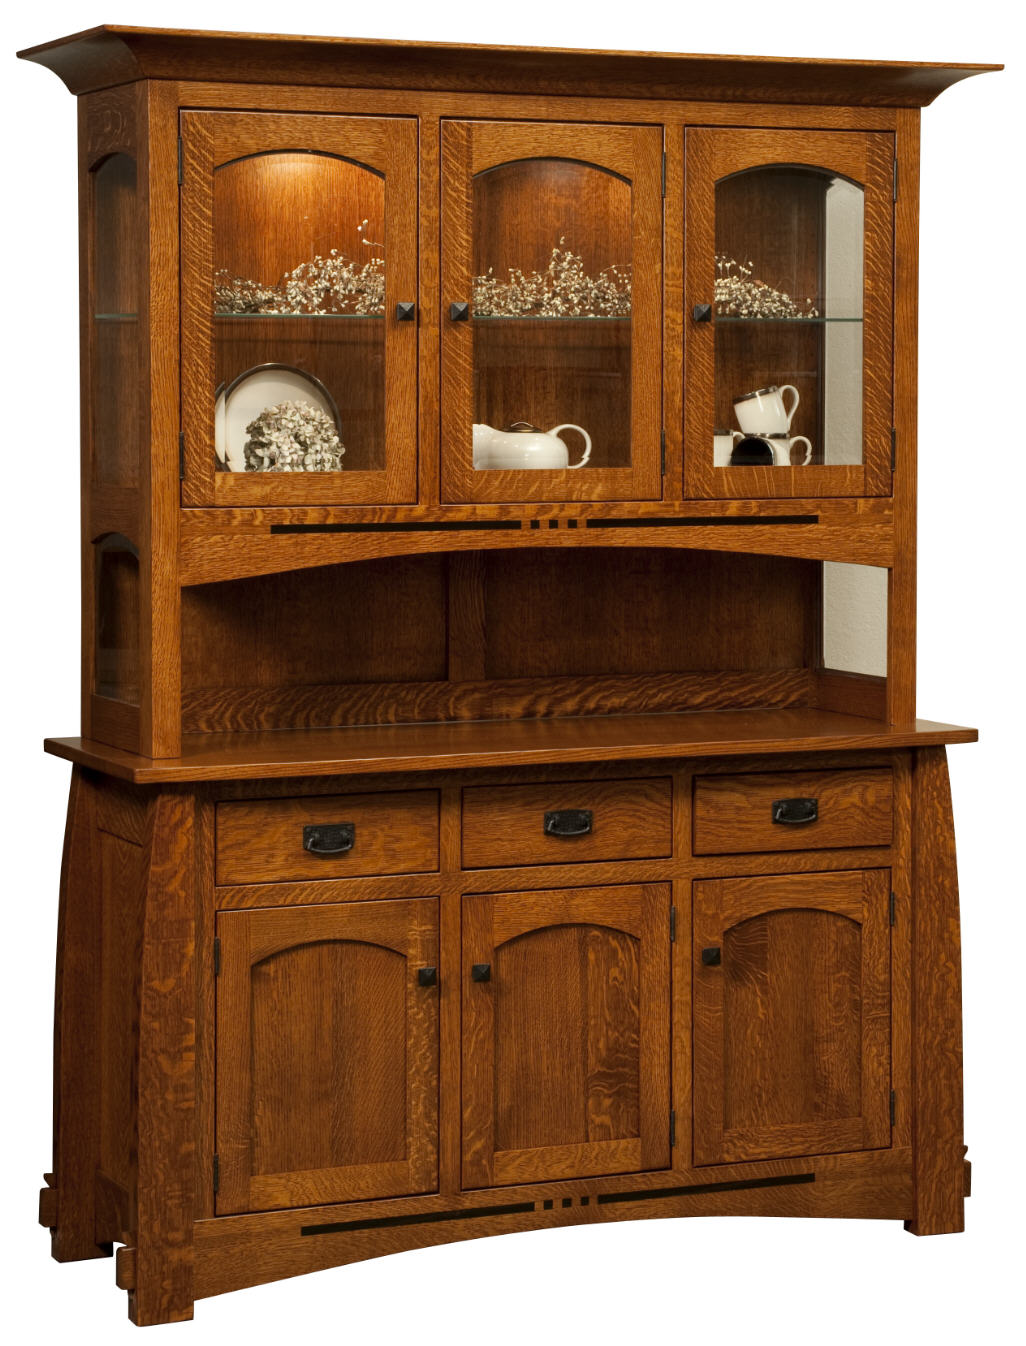 Colebrook hutch 403 coleh2d 125 dining furniture for Stone barn furnishings